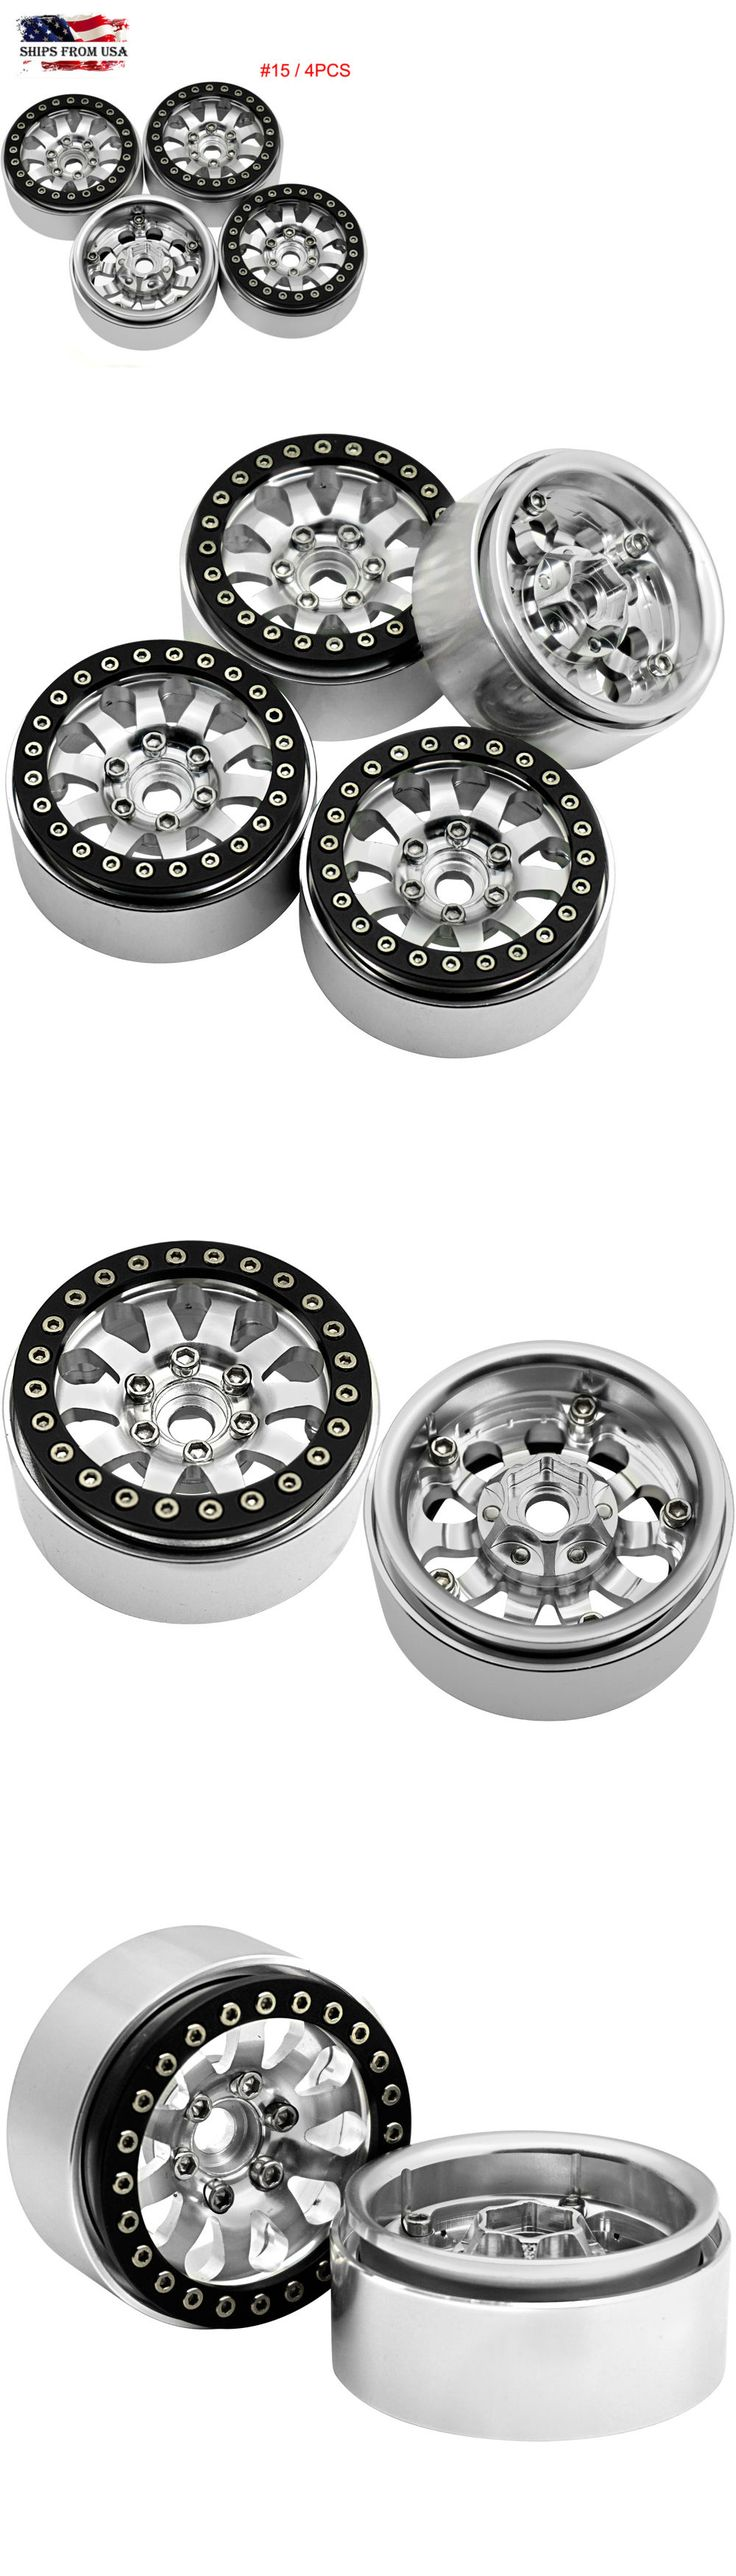 Wheels Tires Rims and Hubs 182201: 4Pcs 1.9 Alloy Beadlock Wheel Rim For Scx10 Cc01 F350 D90 Rc4wd 1 10 Rc Crawler -> BUY IT NOW ONLY: $49 on eBay!